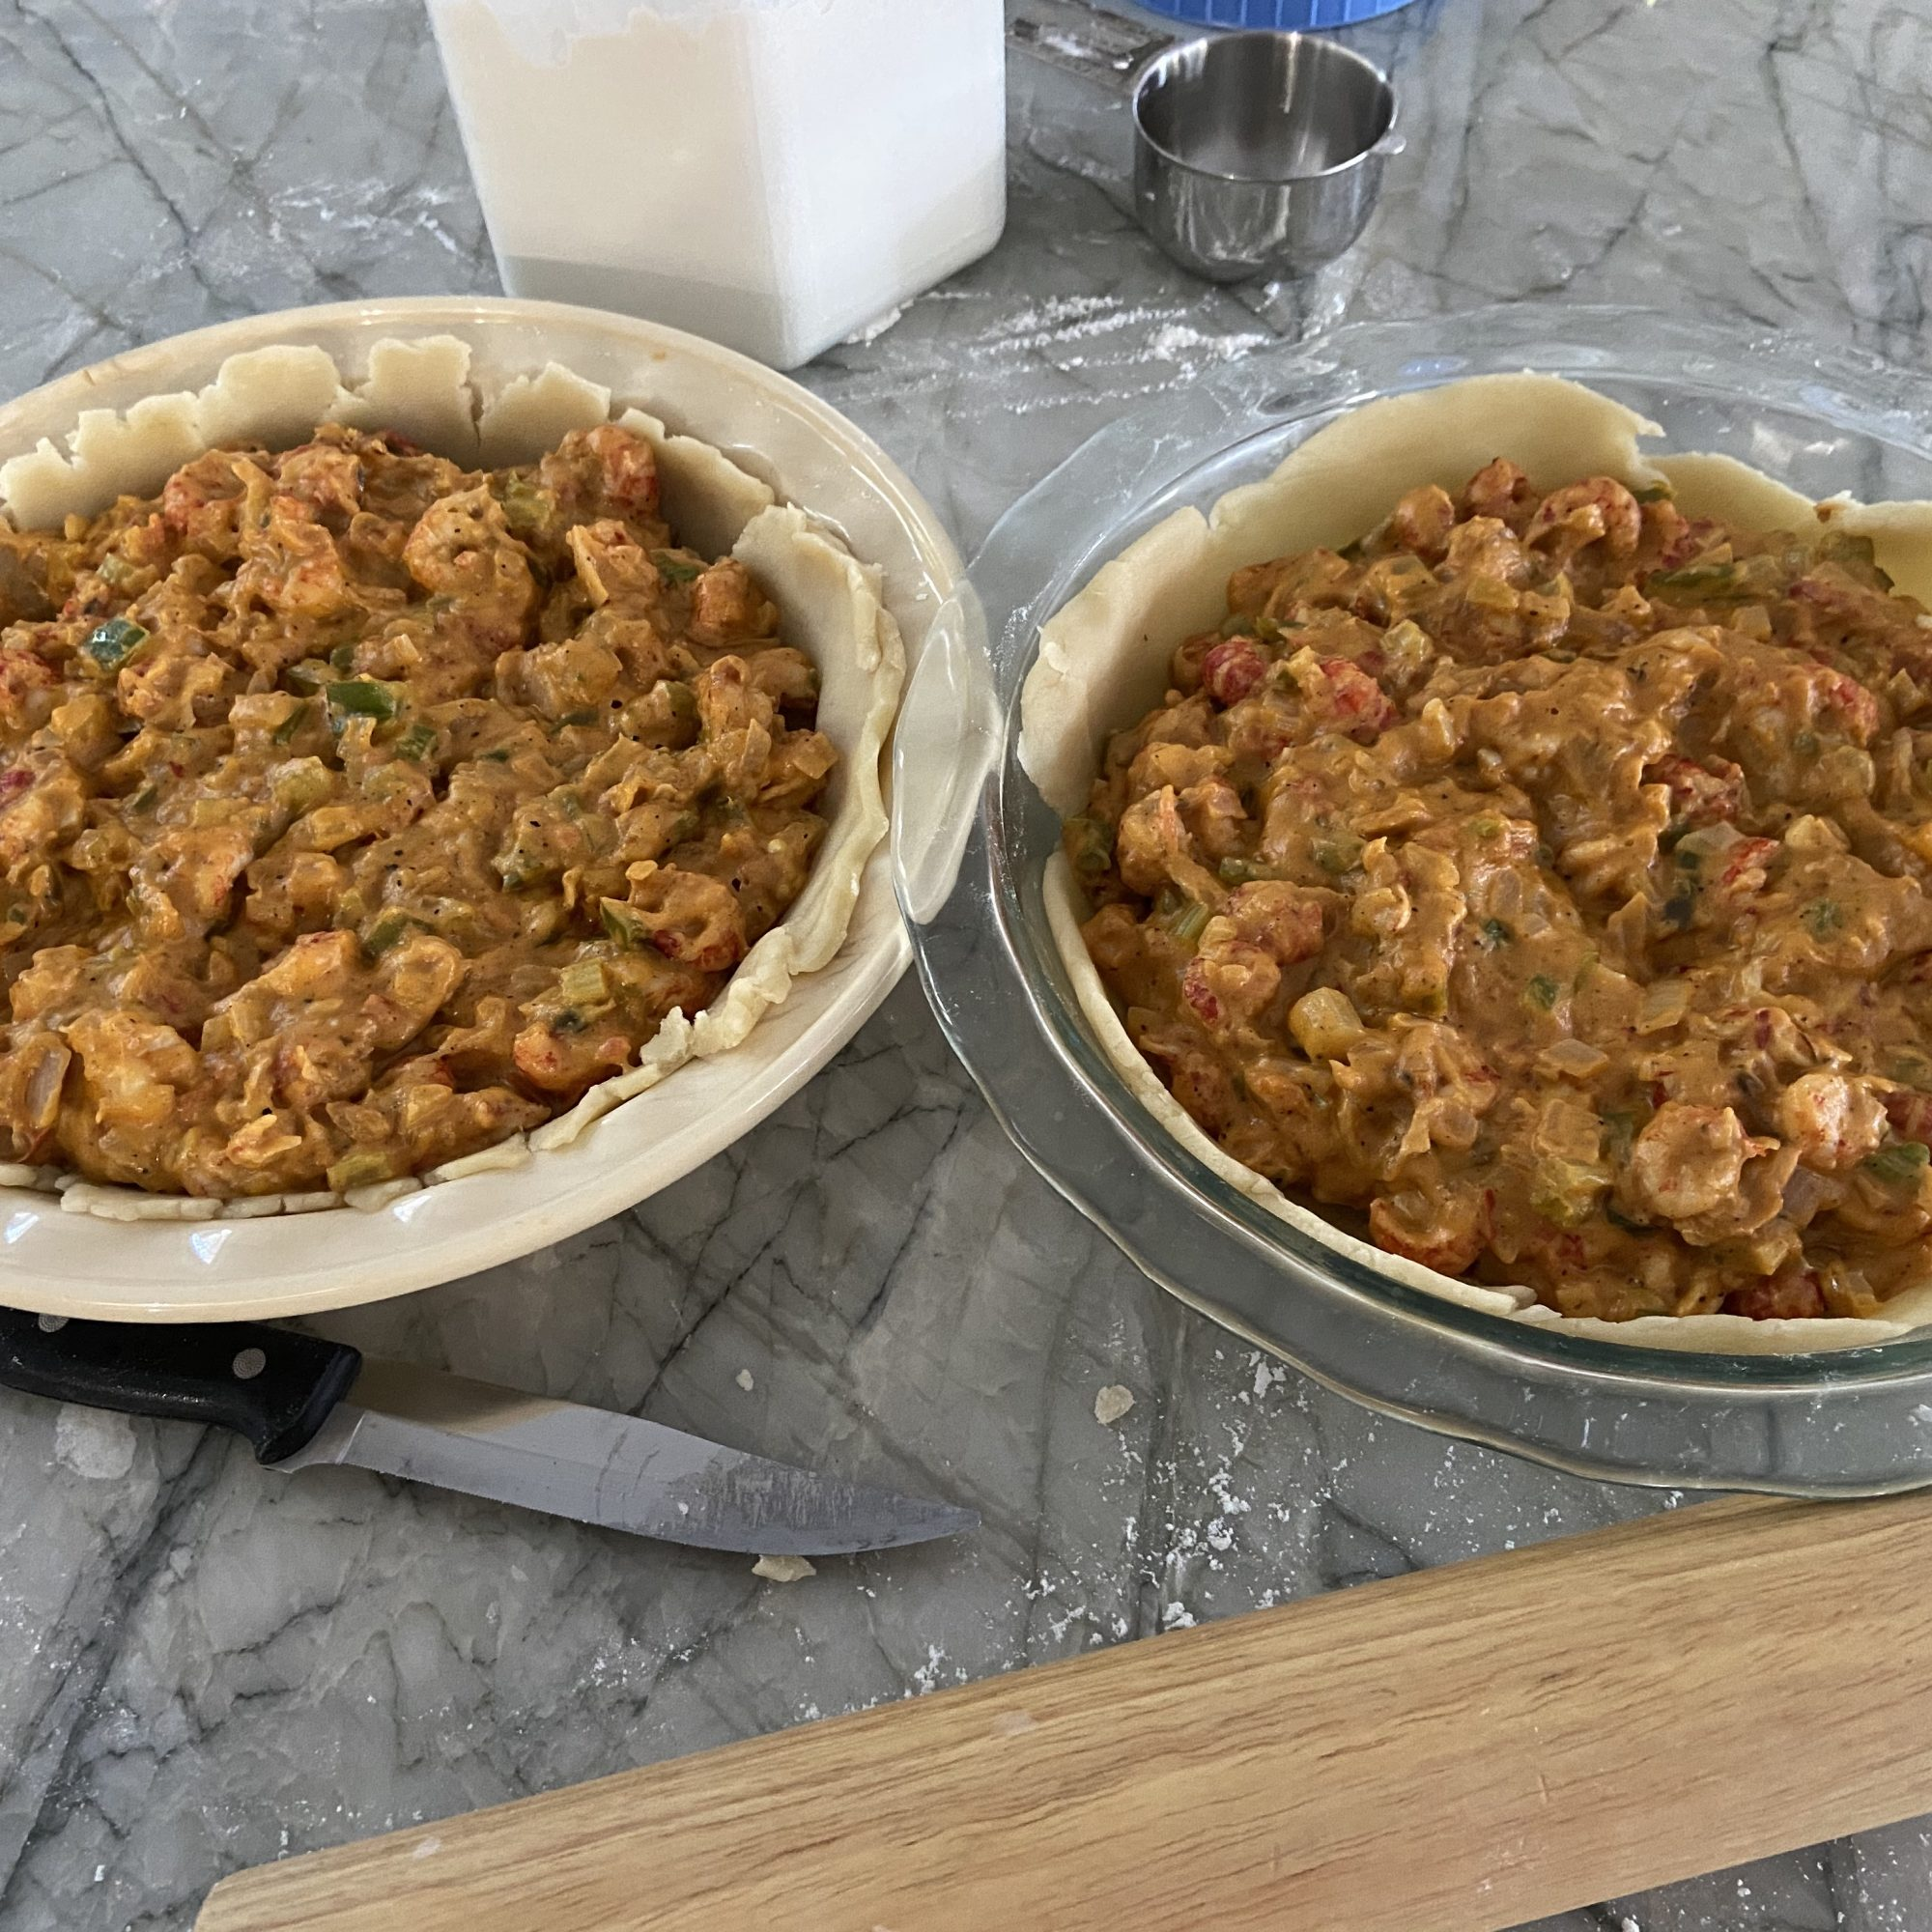 It's plentiful in the Creole State, and it happens to make one of the best savory pie fillings. Crawfish is joined with plentiful spices, onion, bell pepper, and tomatoes, to make a well-seasoned savory pie filing. If diners at your table don't like heat, scale back on the cayenne, and offer others a bottle of one of Louisiana's famous hot sauces.